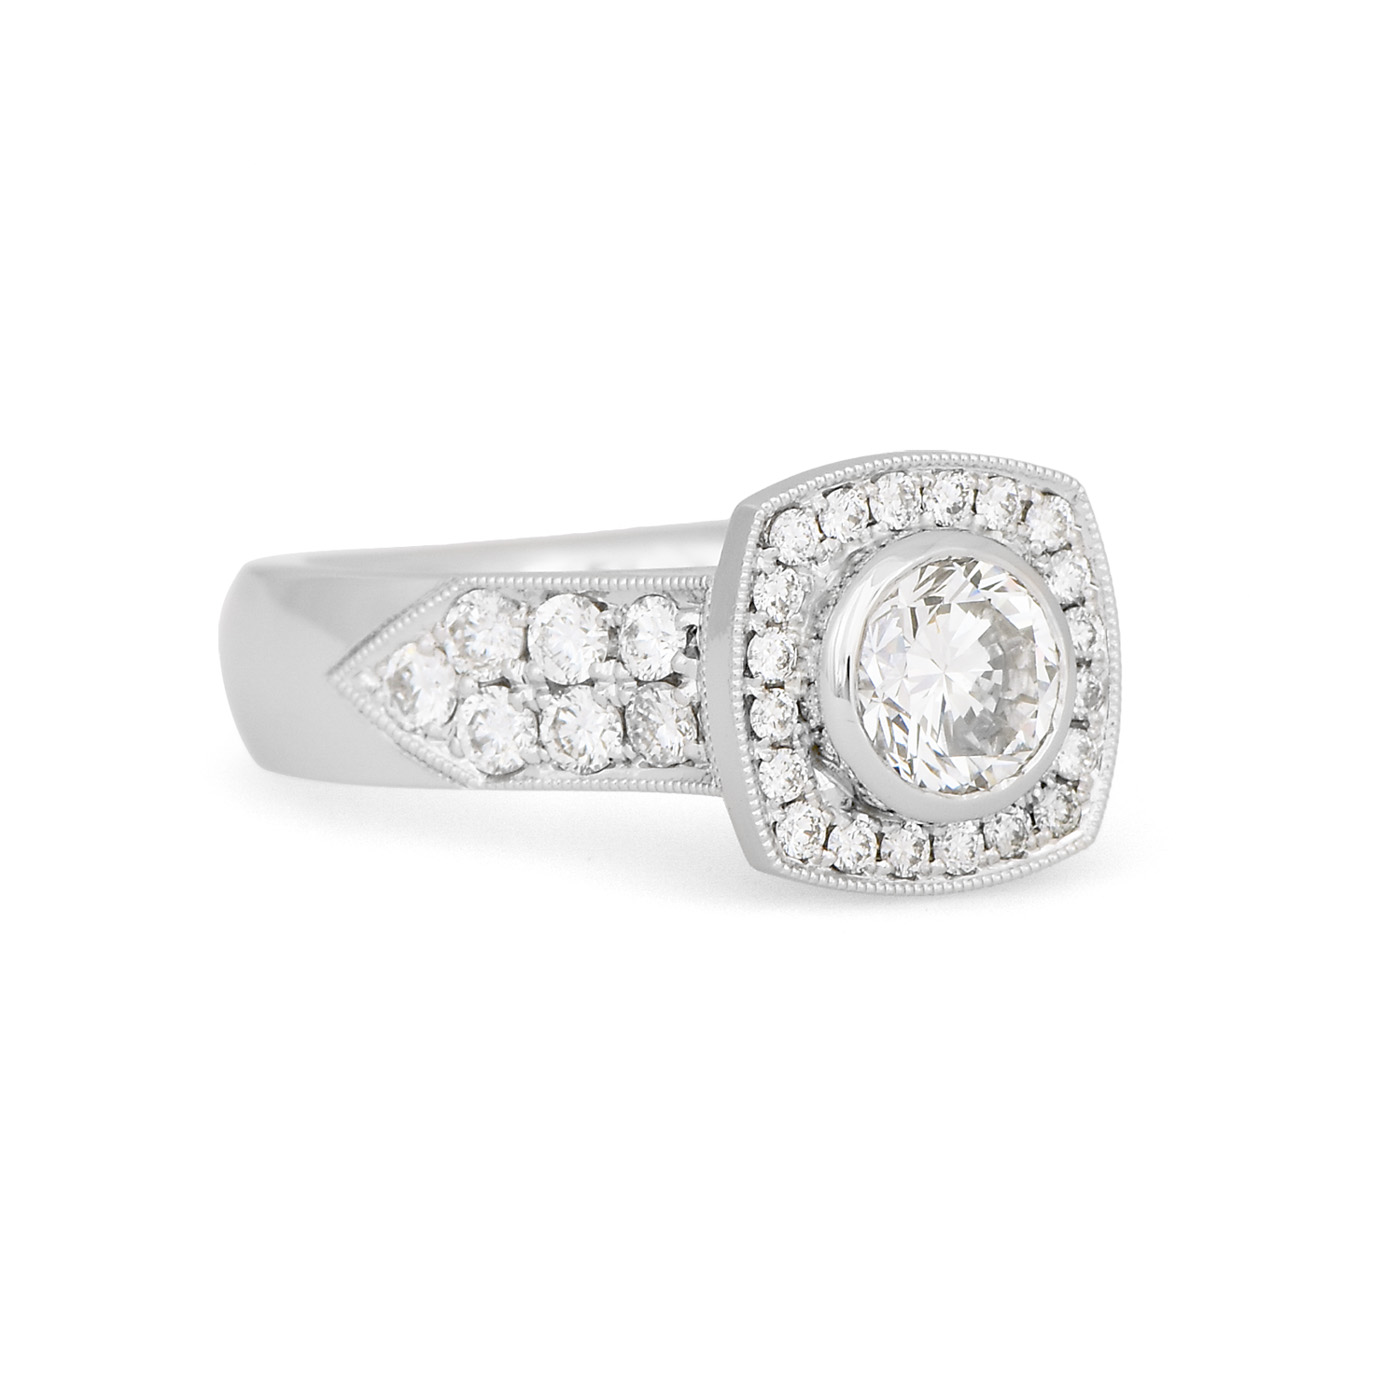 Wide Bezel Set Diamond Halo Ring